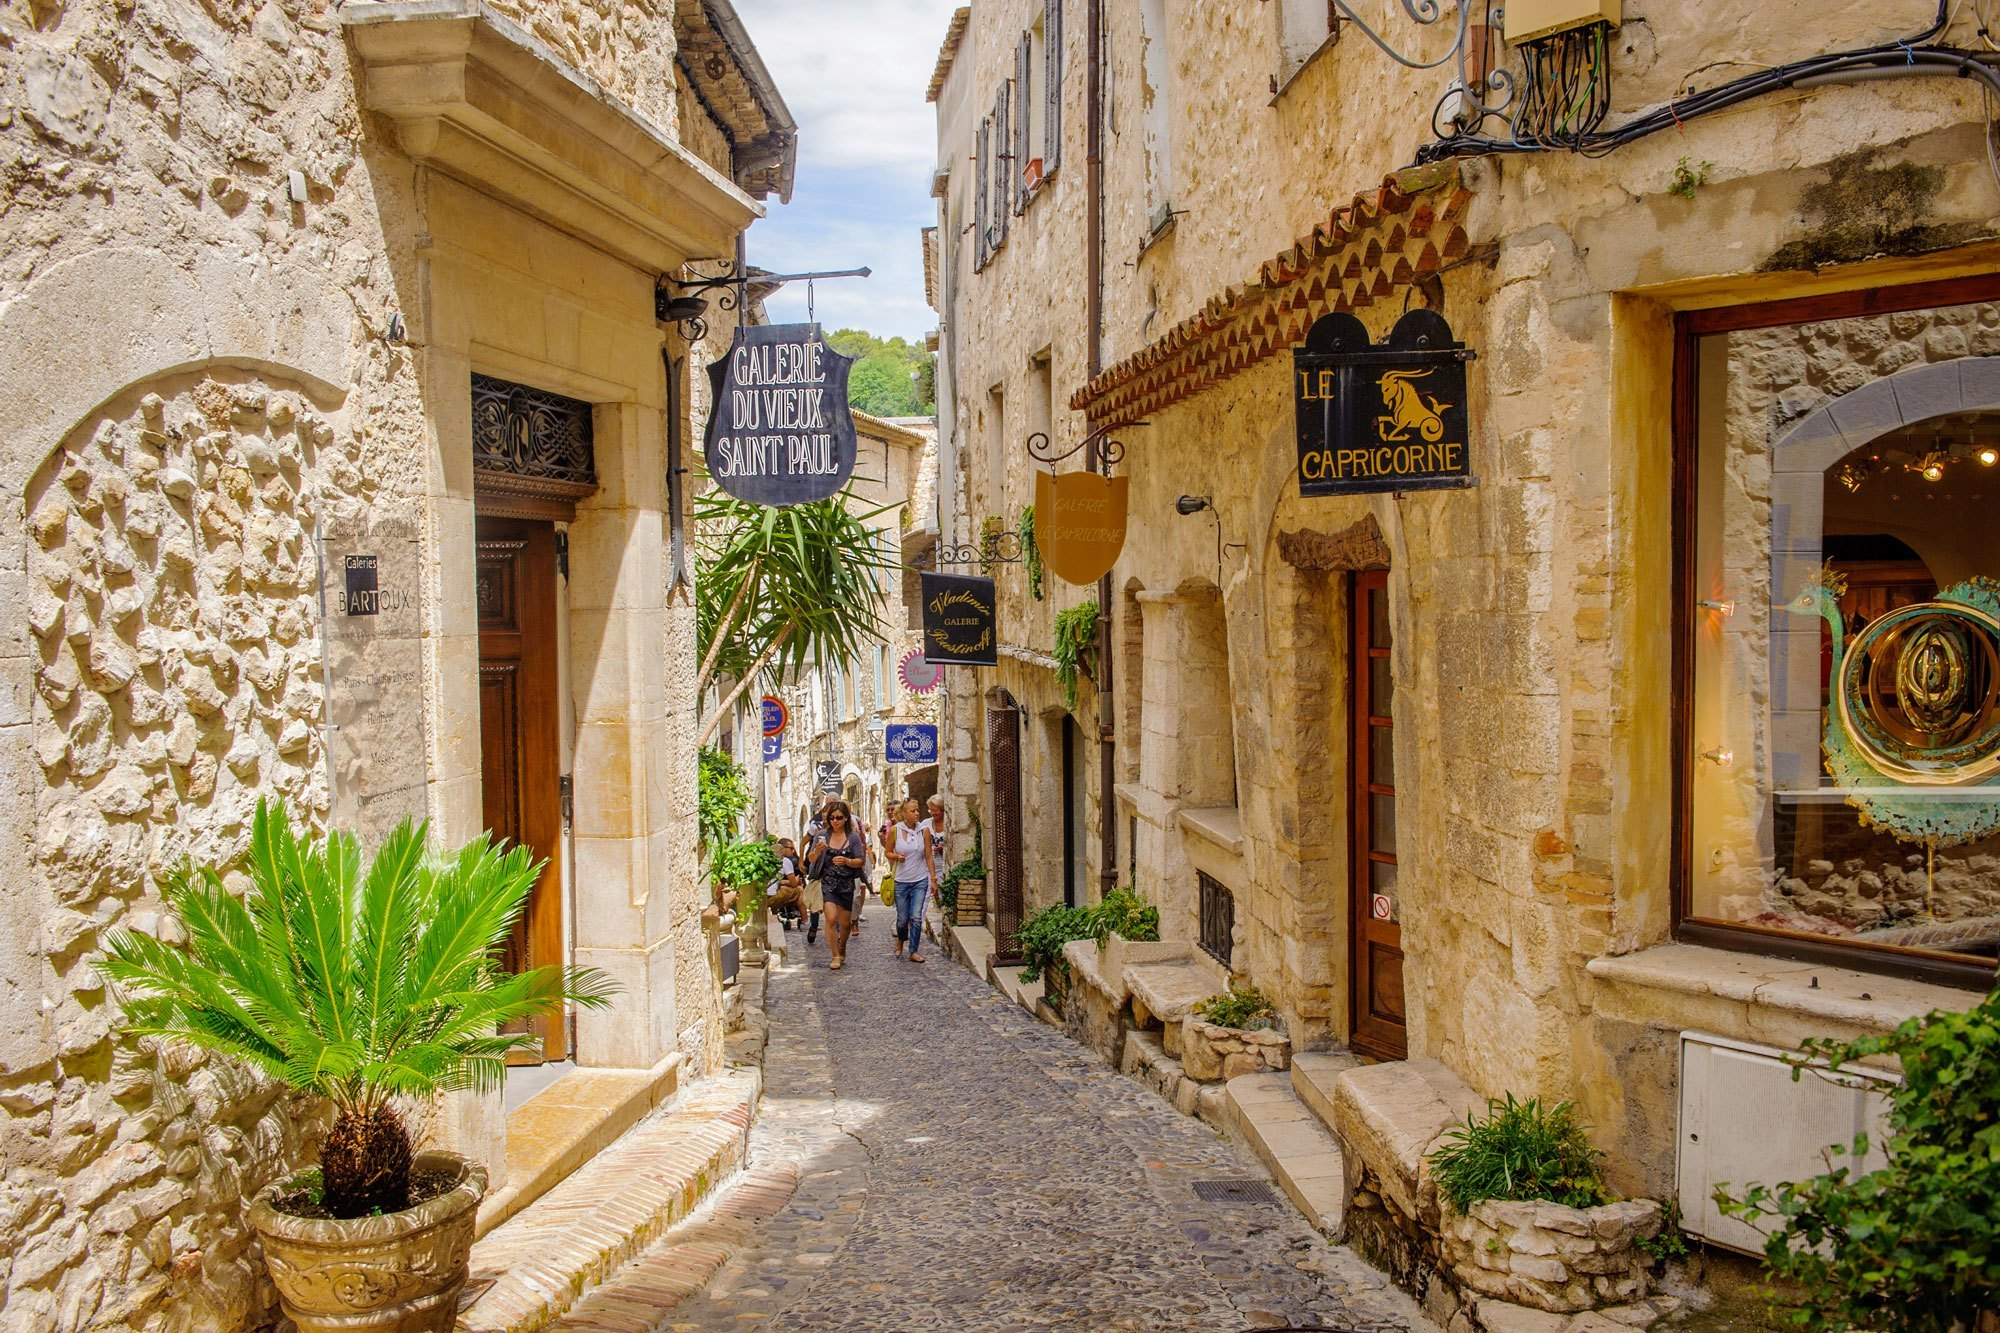 Saint paul de vence the must see attractions cap taillat campsite ramatuelle - Office de tourisme de saint paul de vence ...